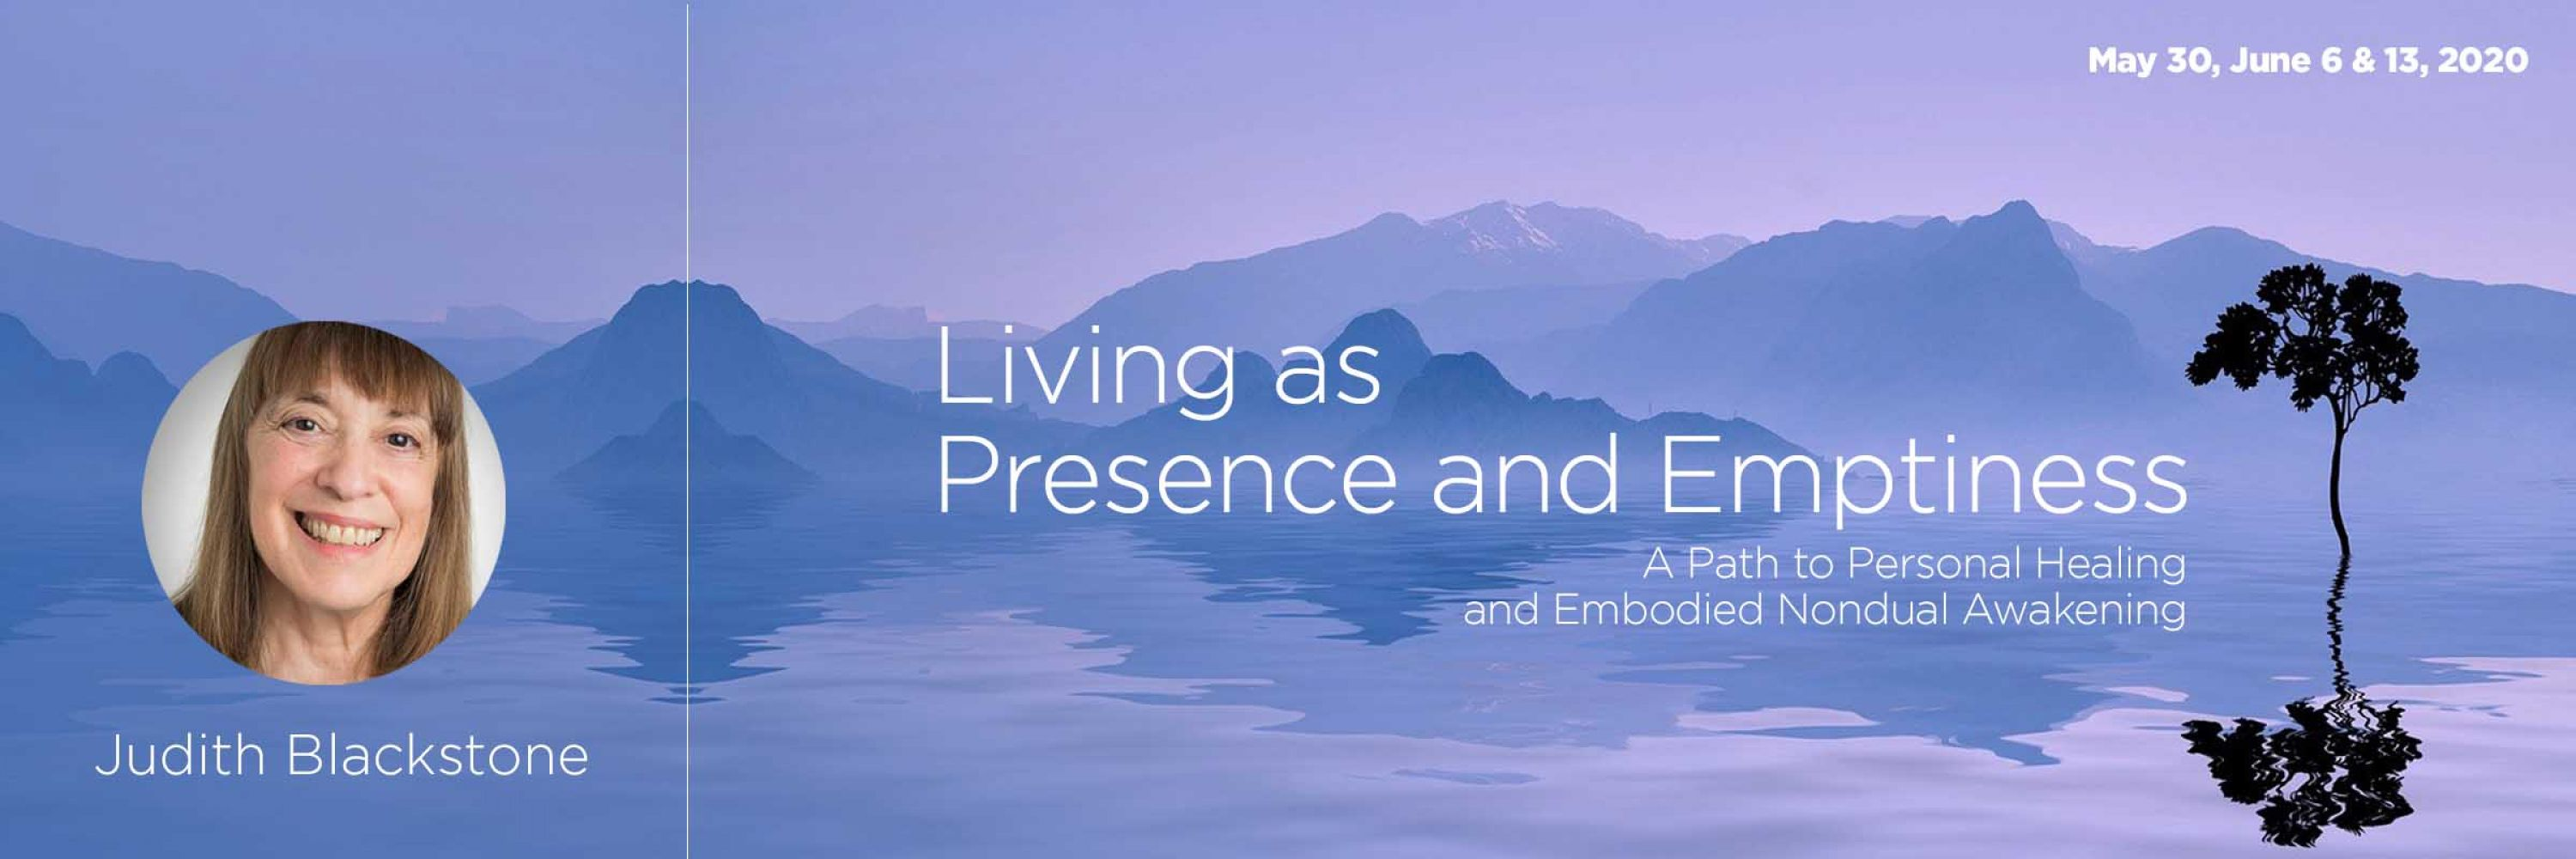 Living as Presence and Emptiness